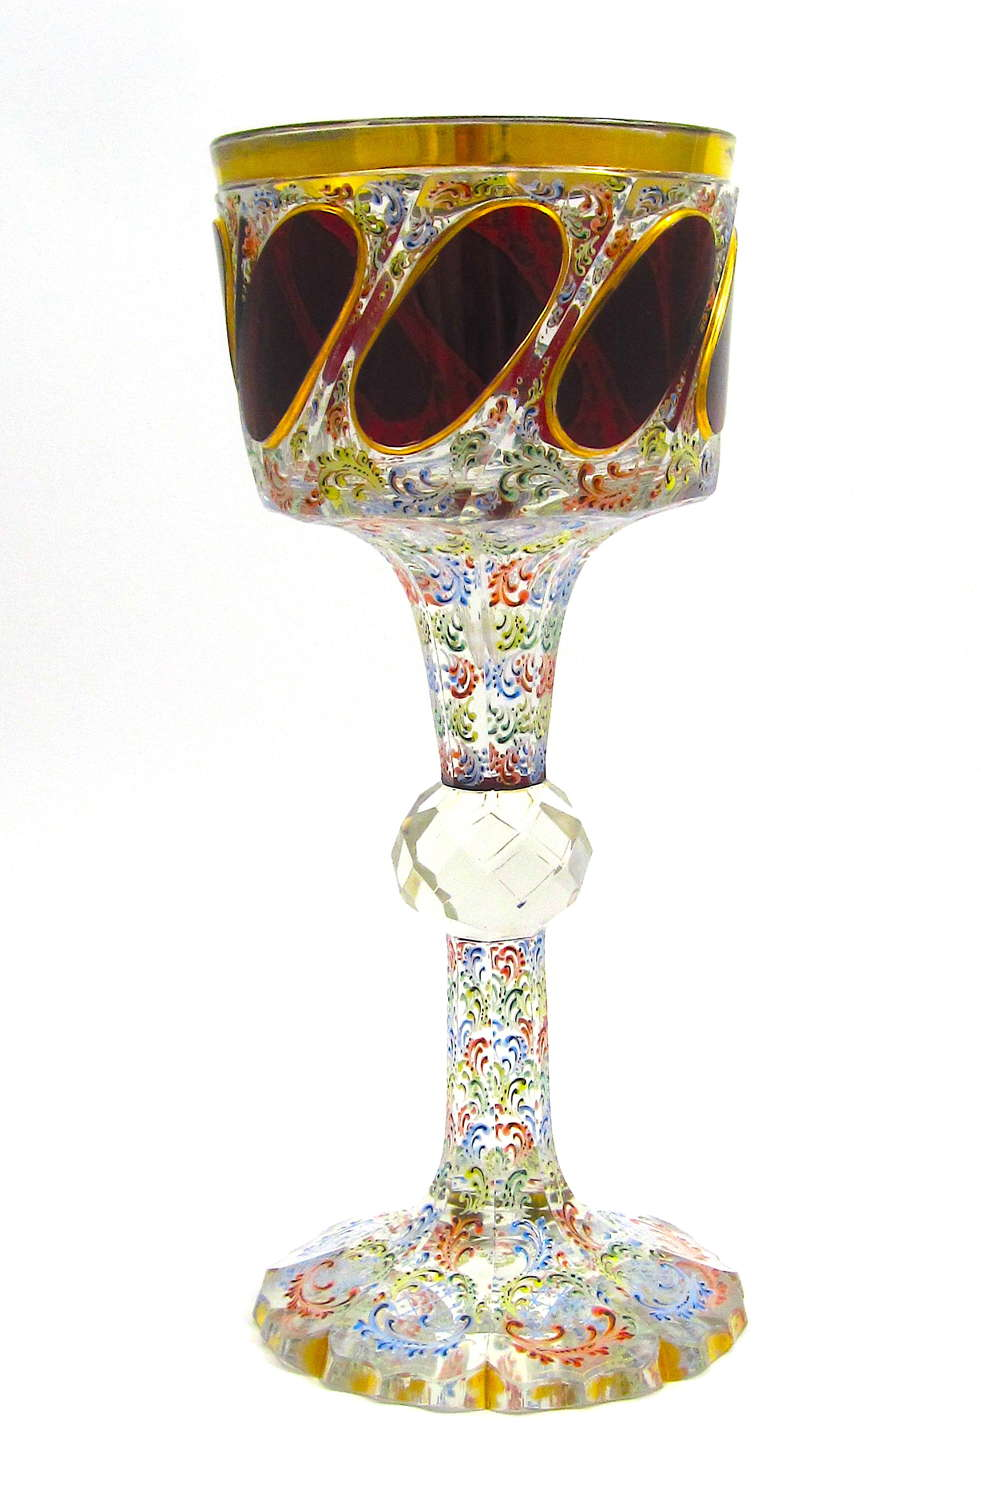 A Tall Antique Moser Vase Decorated with Red Jewel Cabouchon Panels